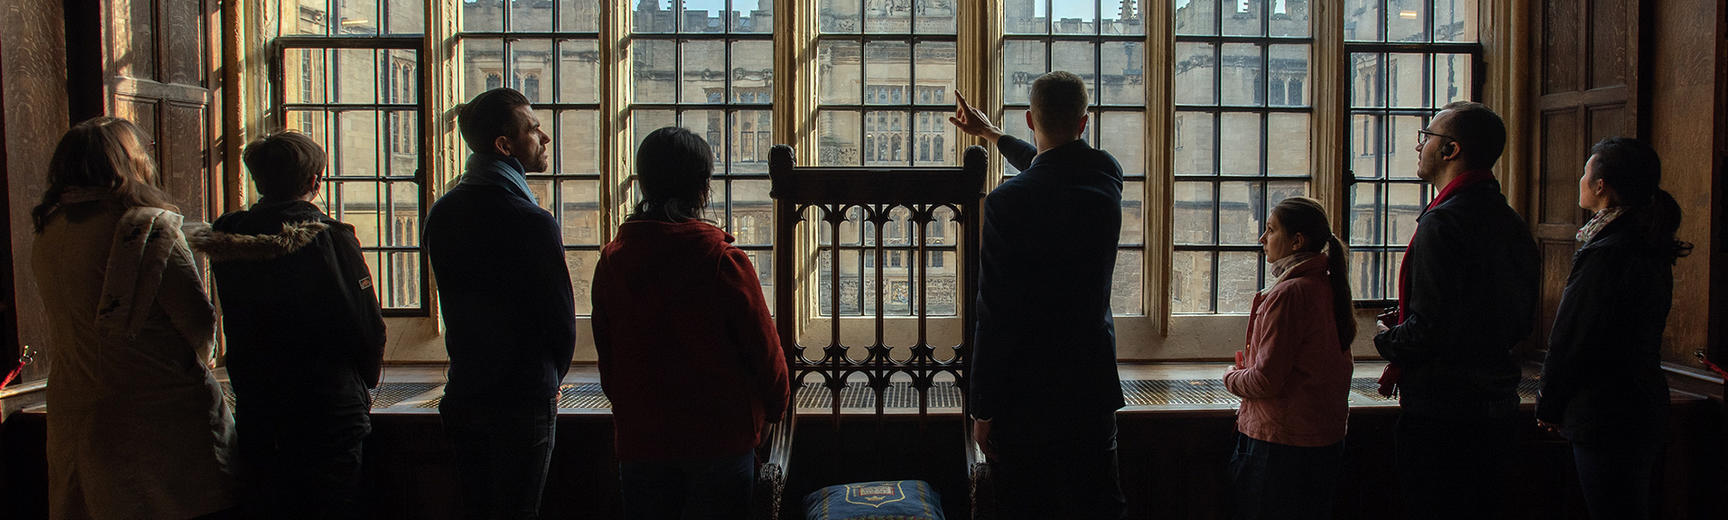 Tour guide showing visitors the view from the Old Bodleian Library